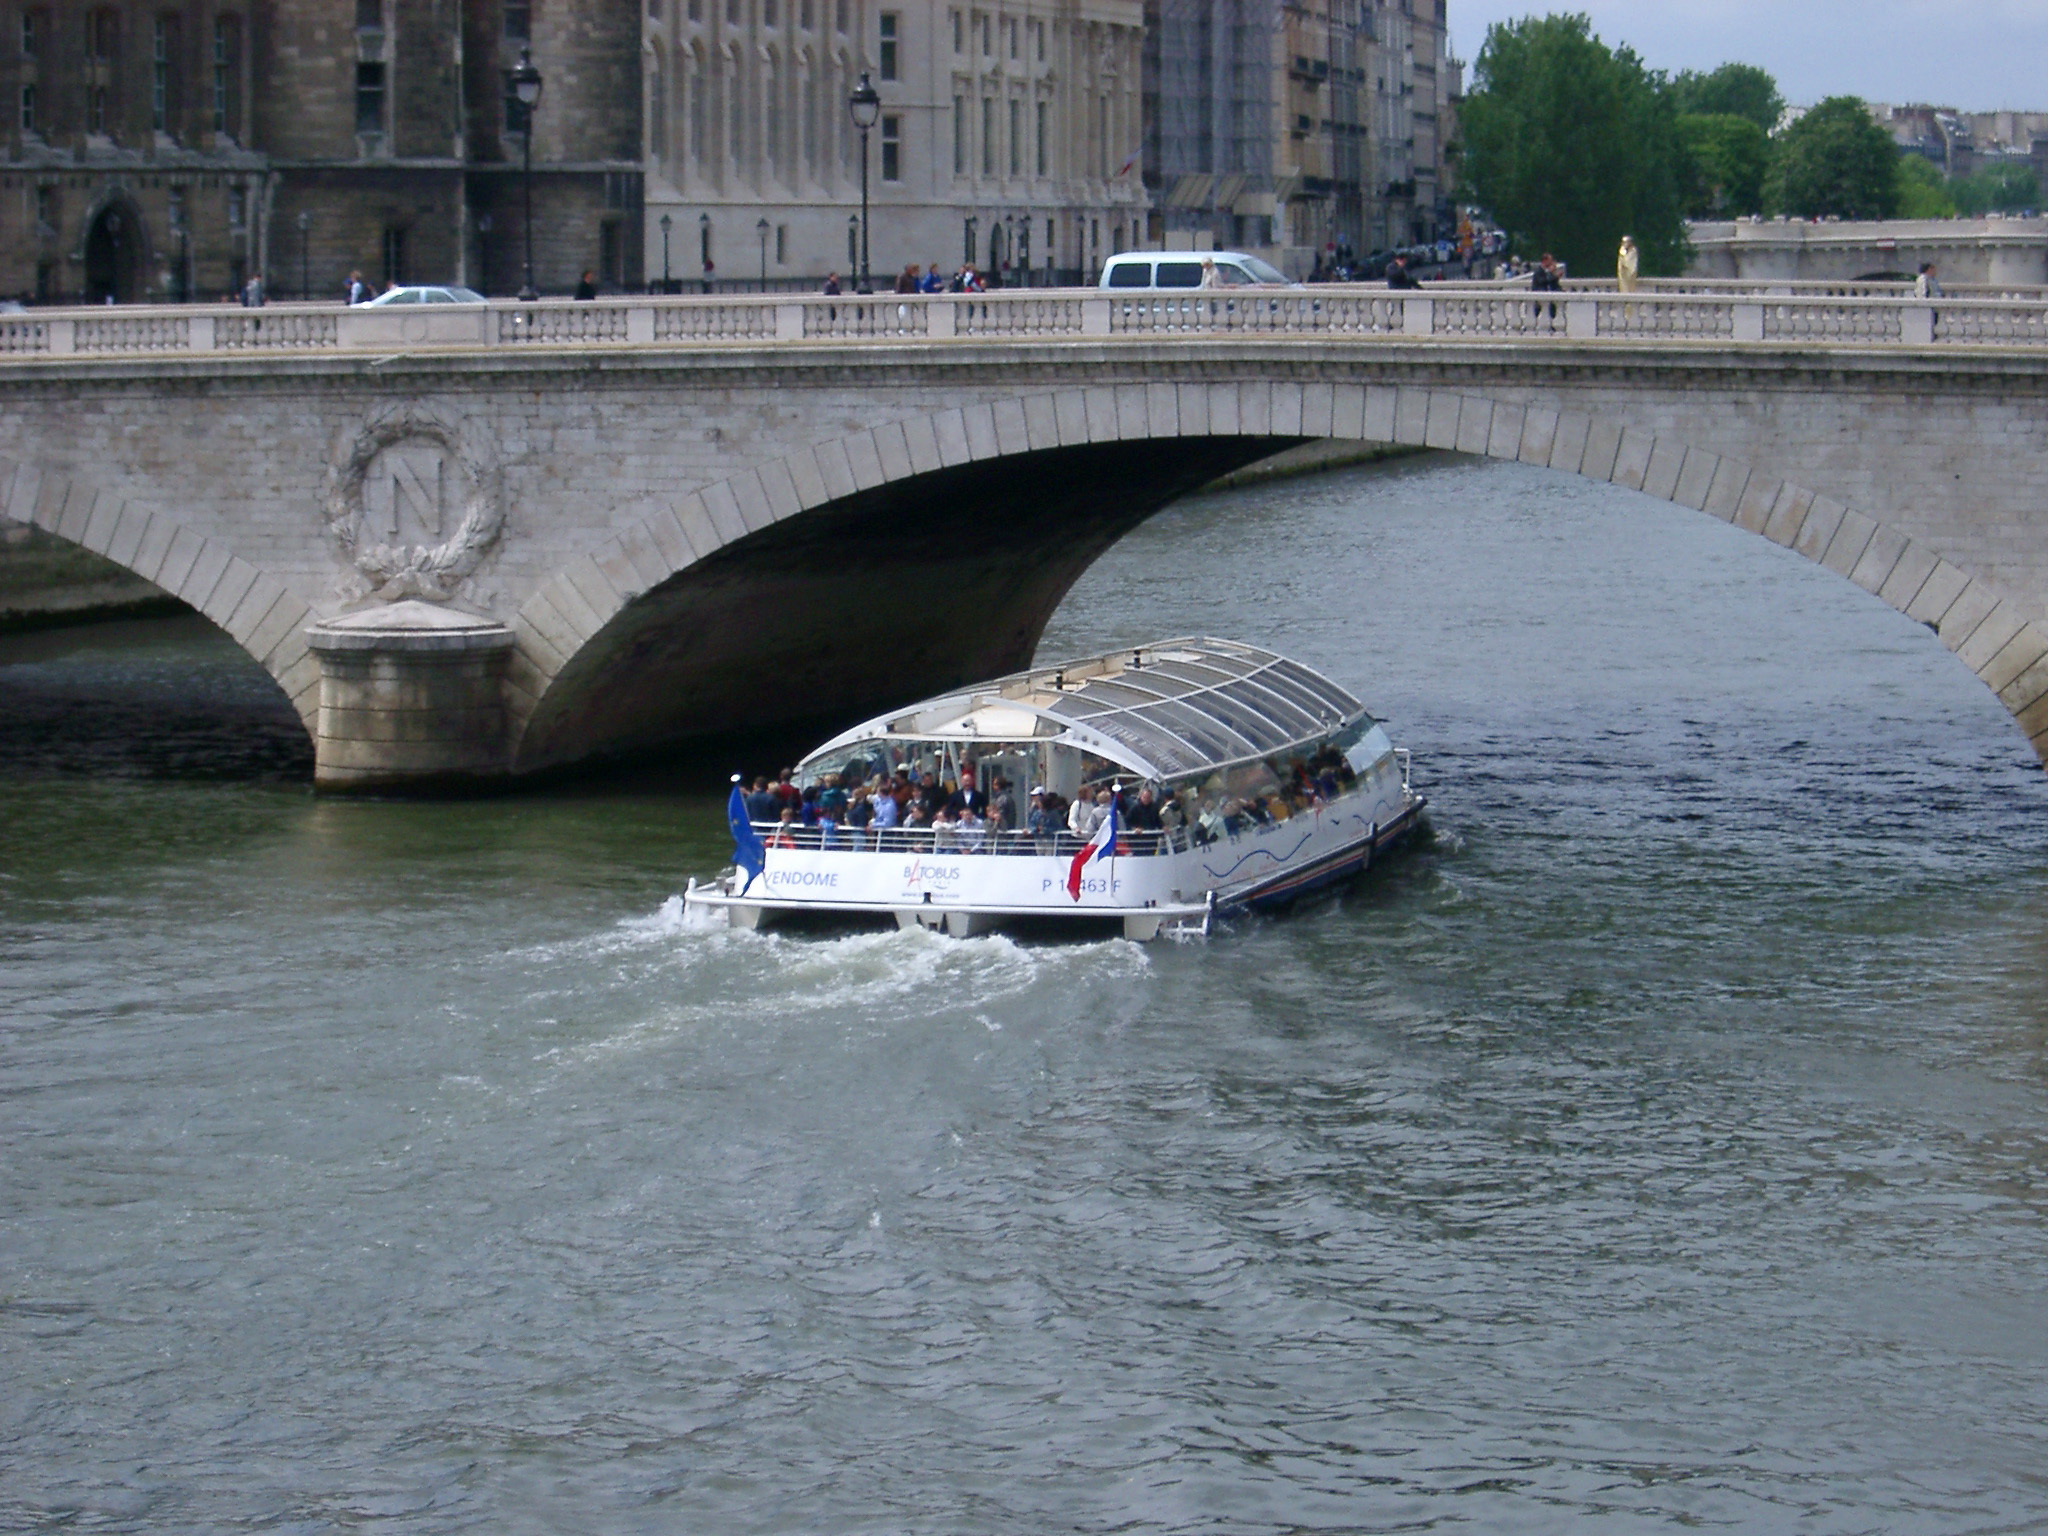 Tour boat or ferry passing under a bridge with traffic on the River Seine in Paris